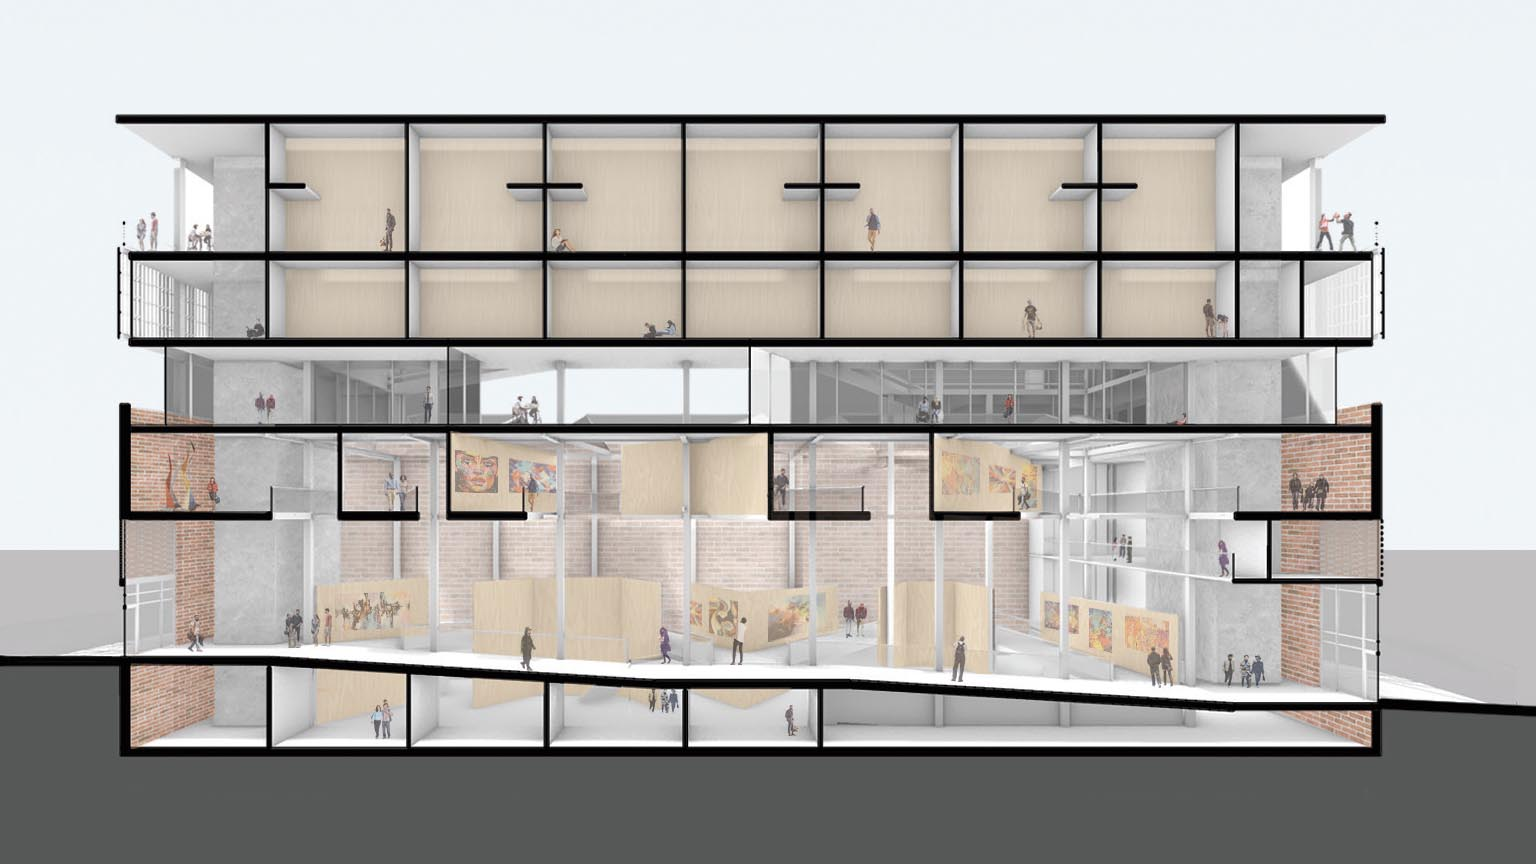 Section perspective showing how floor cuts work to form the gallery walkways and how those are always visually connected to the ground and basement floors. It also highlights the co-working floor, which has an inset glass façade that allows the co-living floors to conceptually float above the existing brick building.